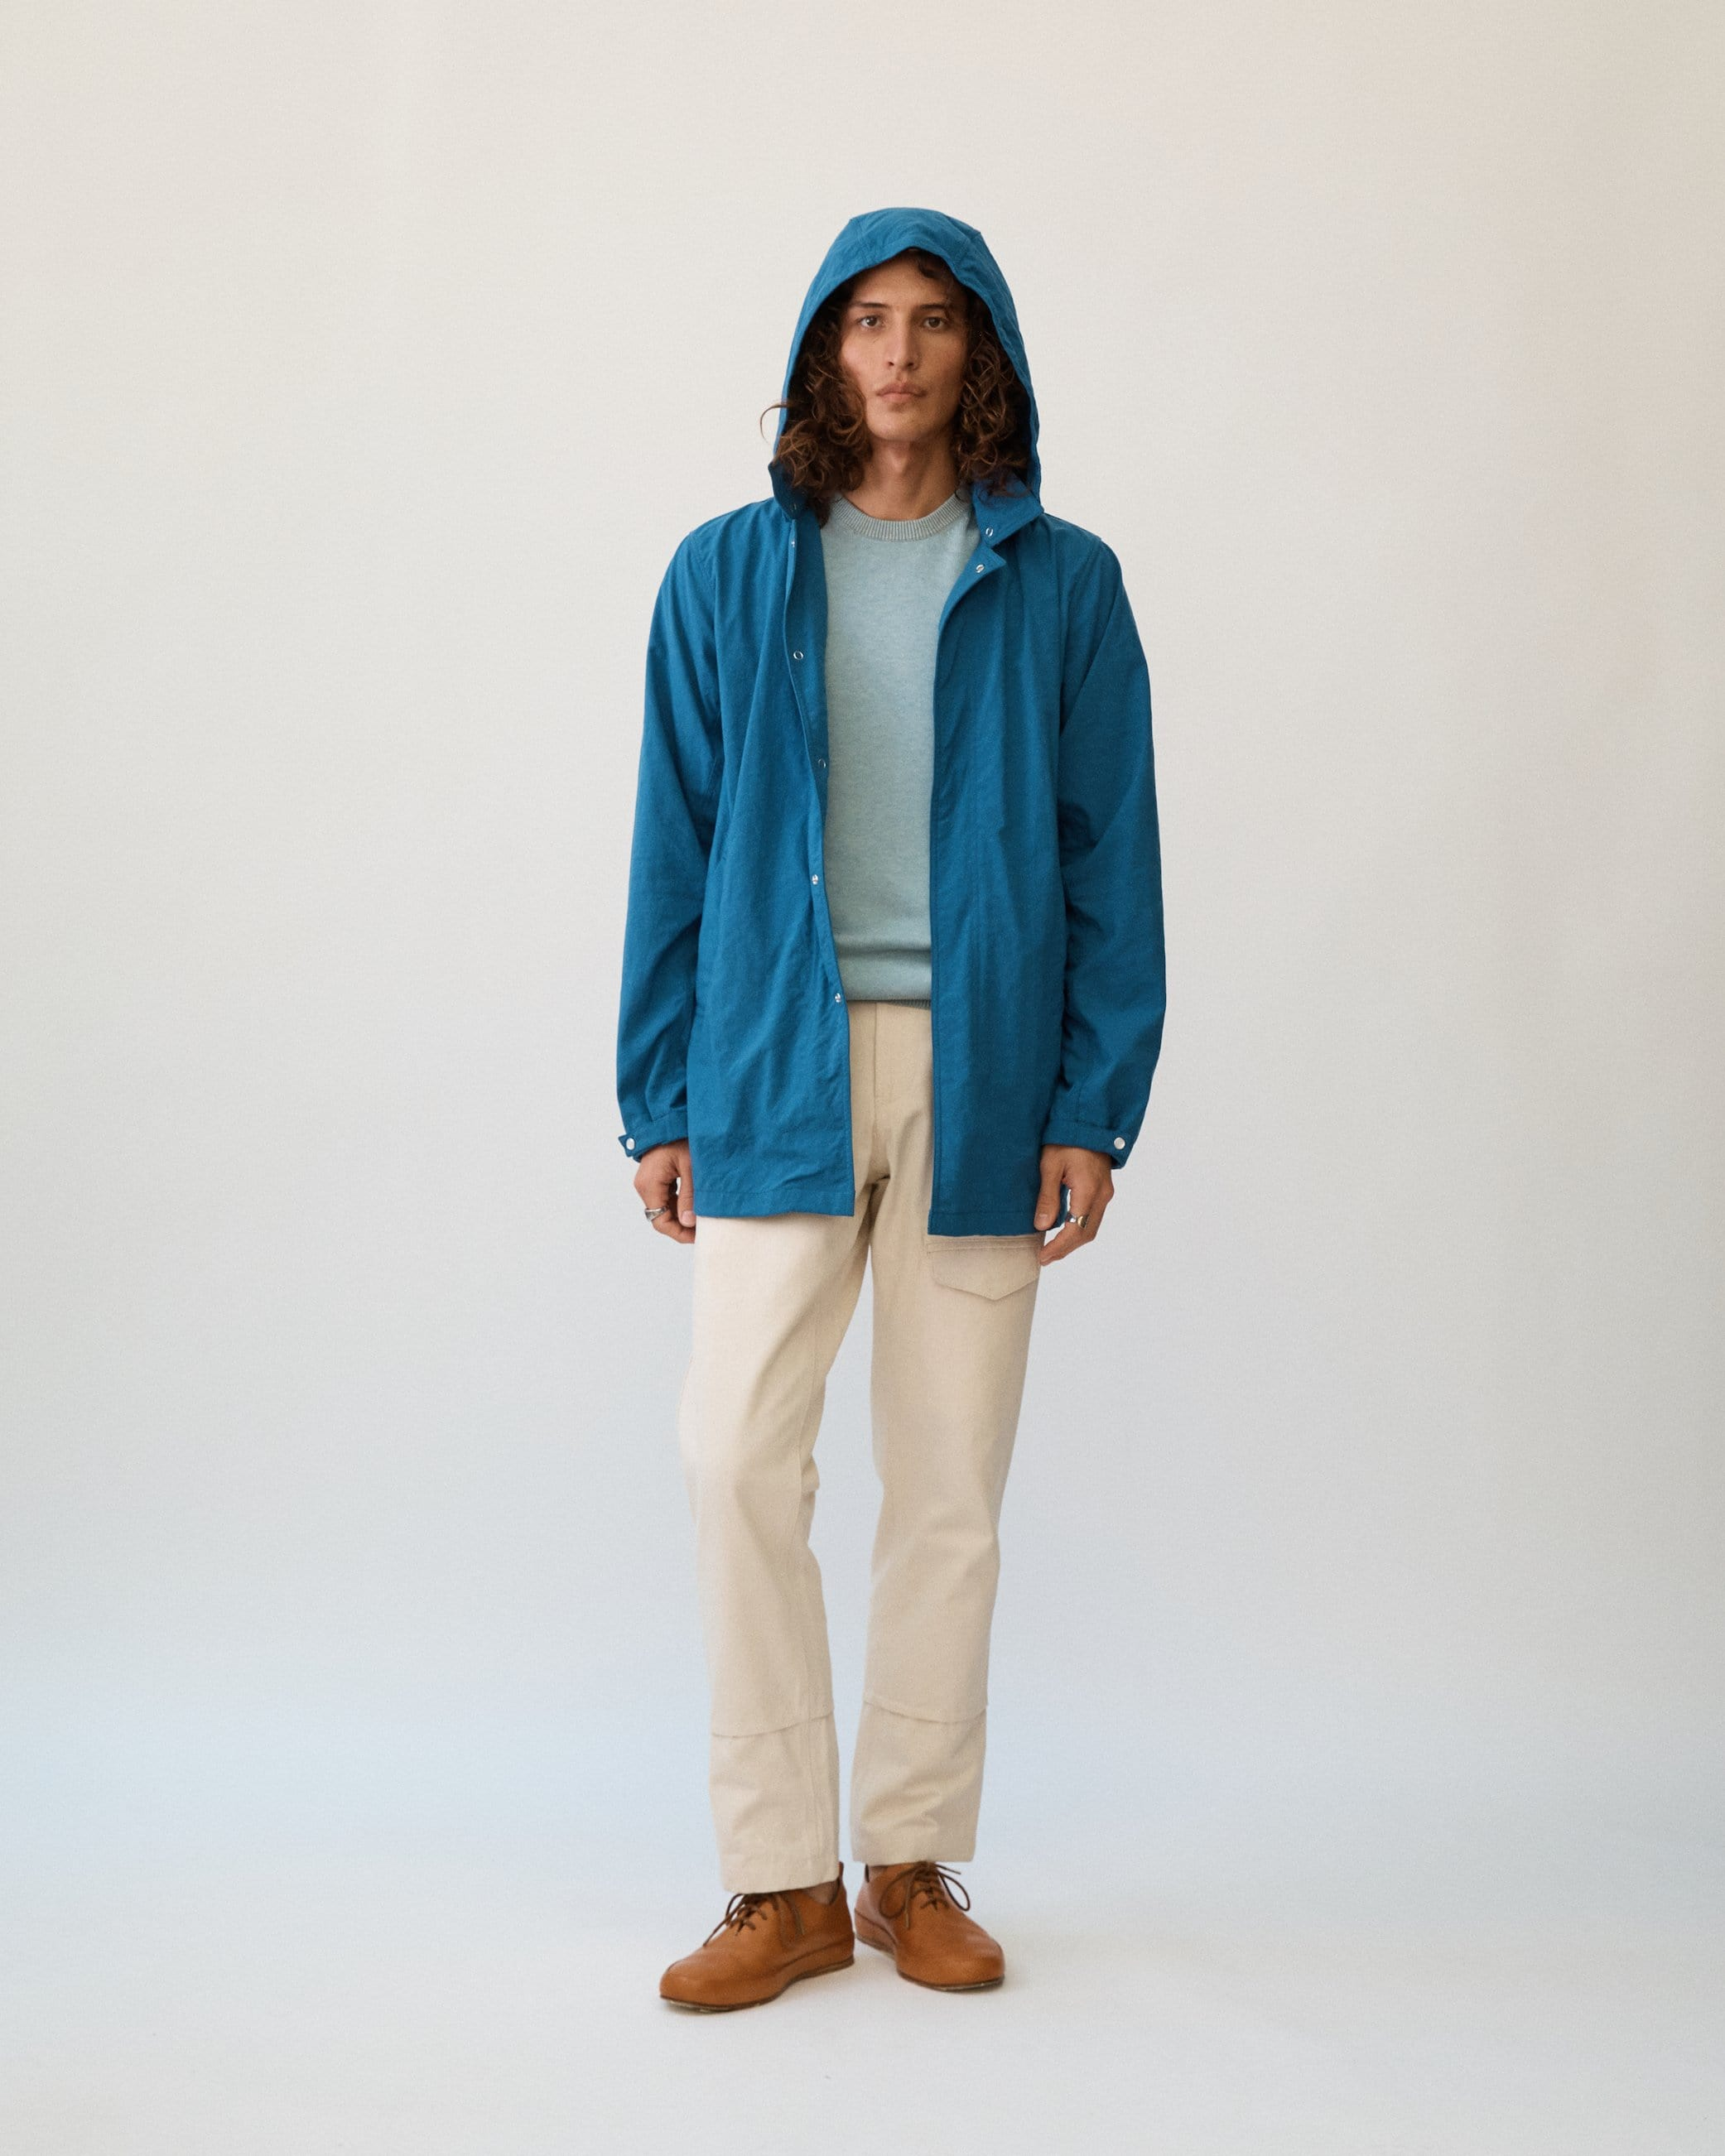 Natural Dye Nylon - Indigo Rainjacket